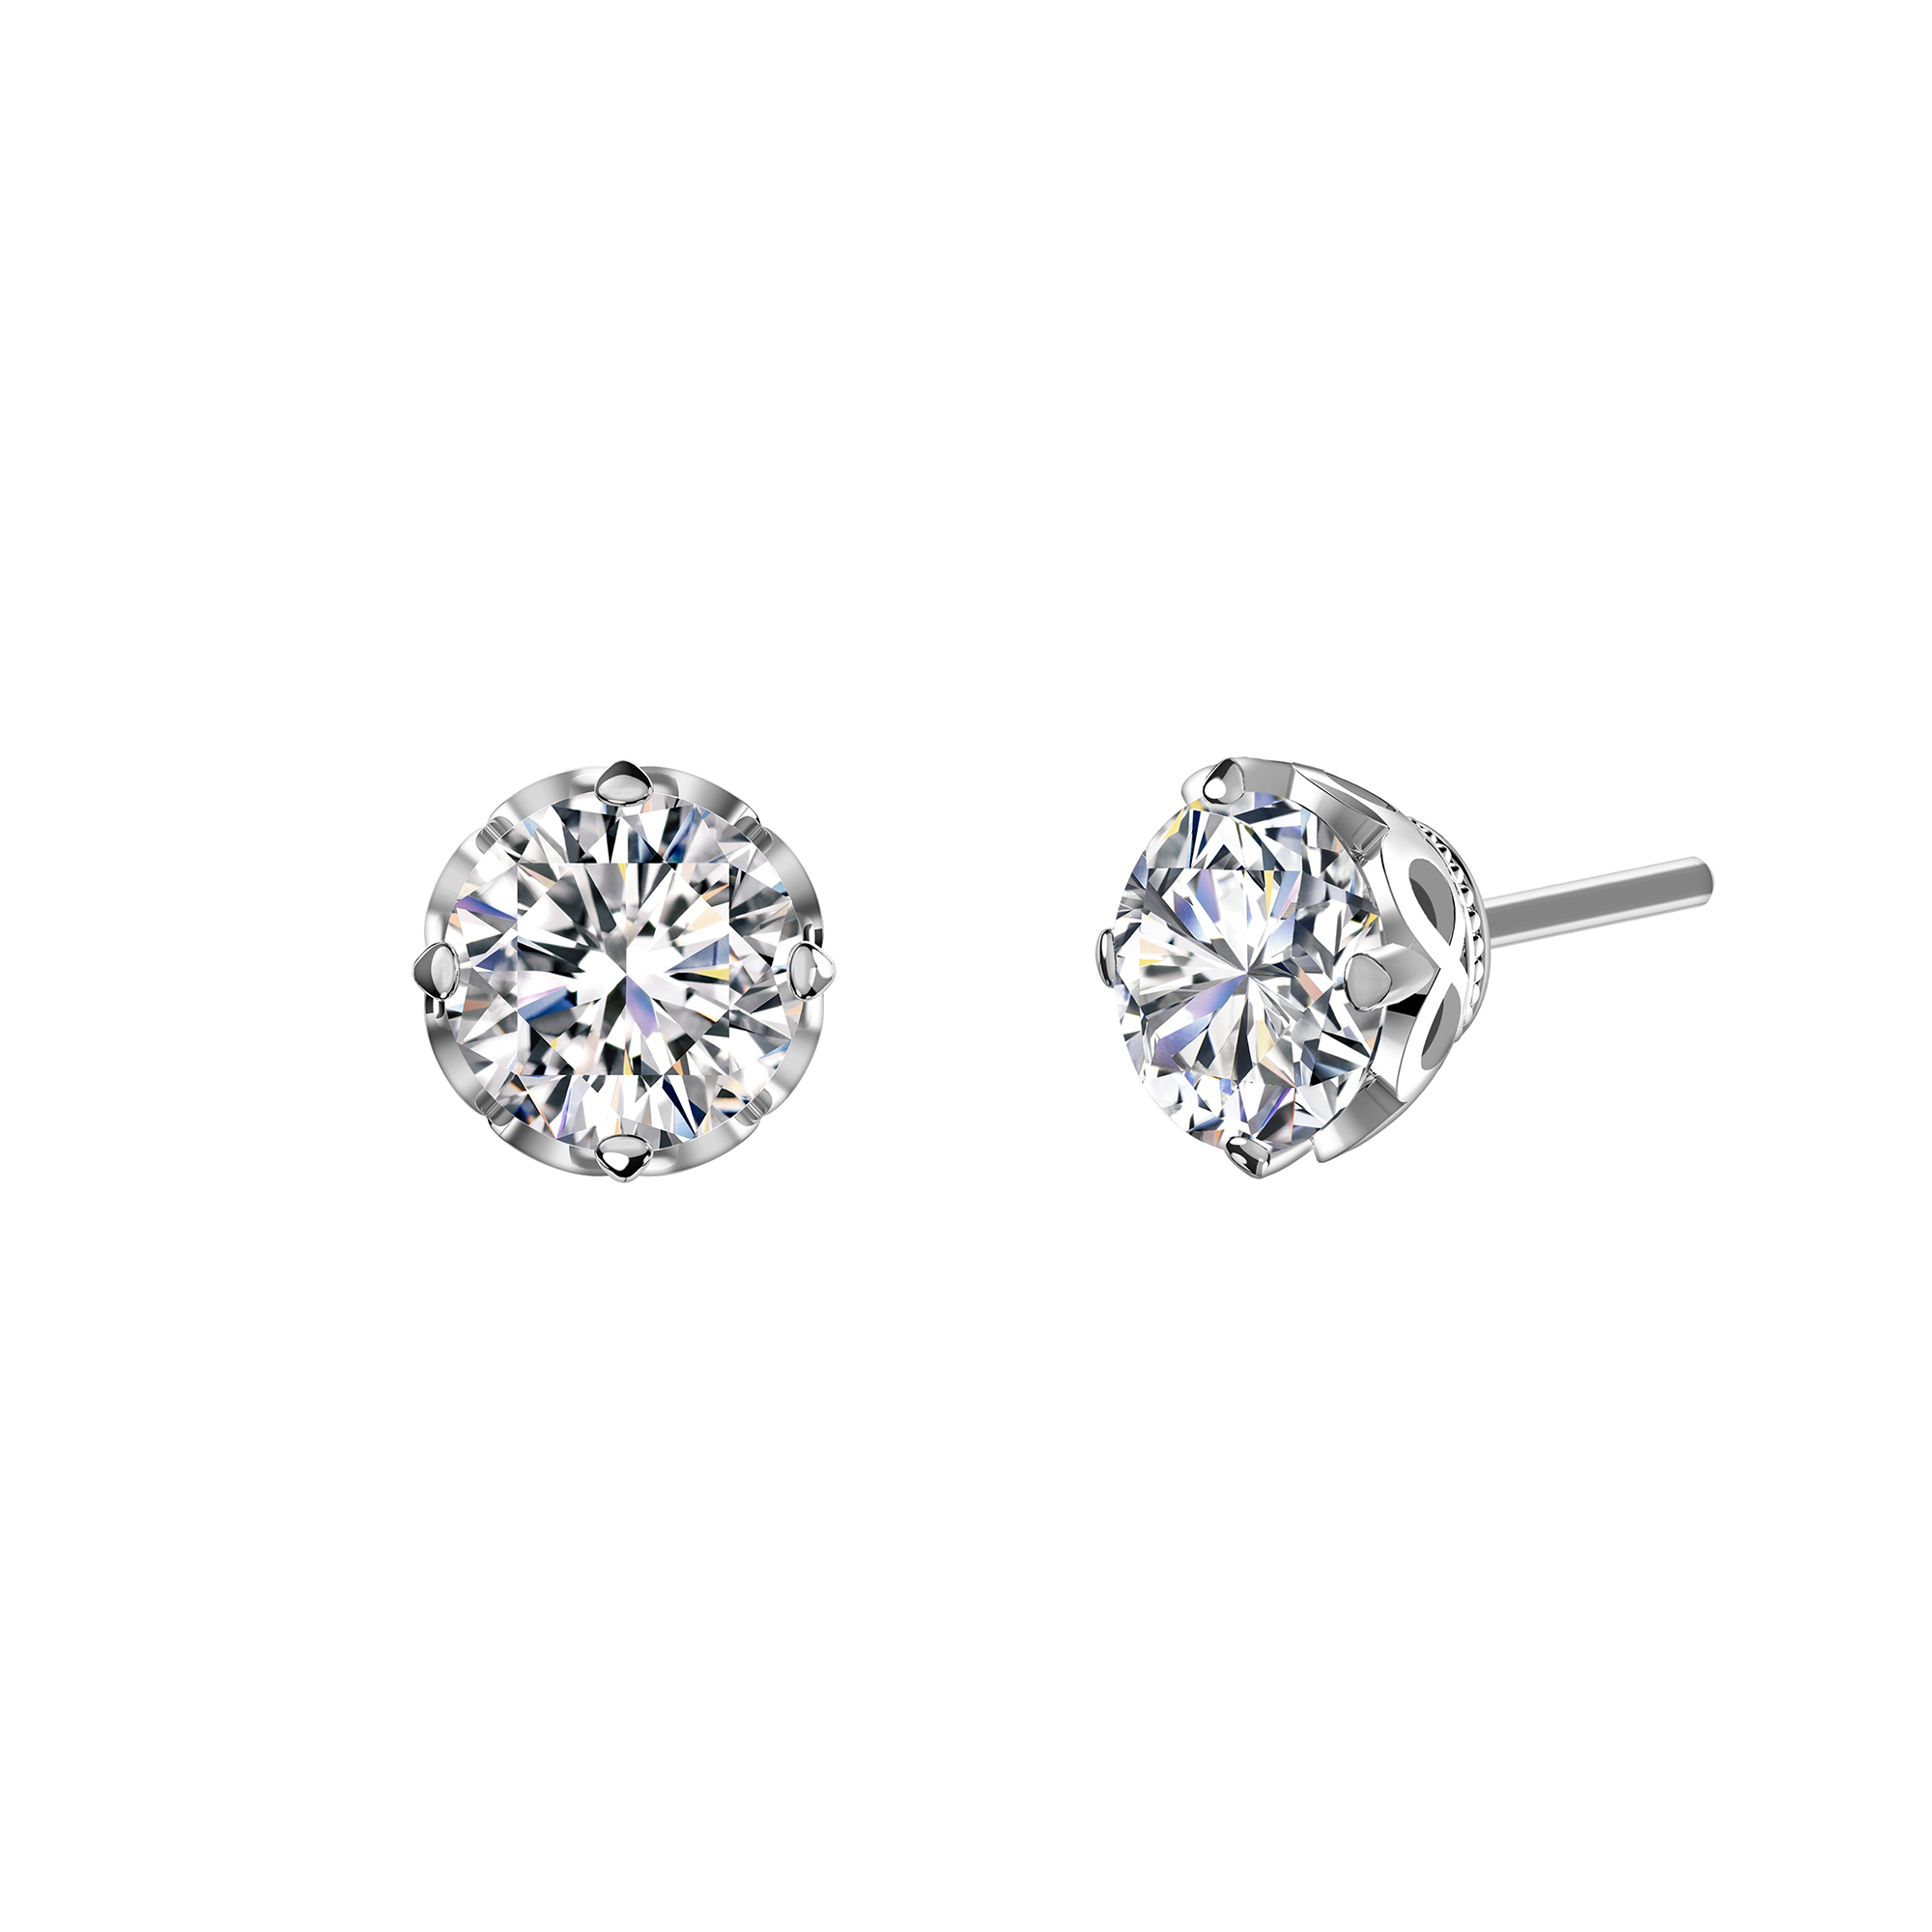 Forevermark Endlea Earrings